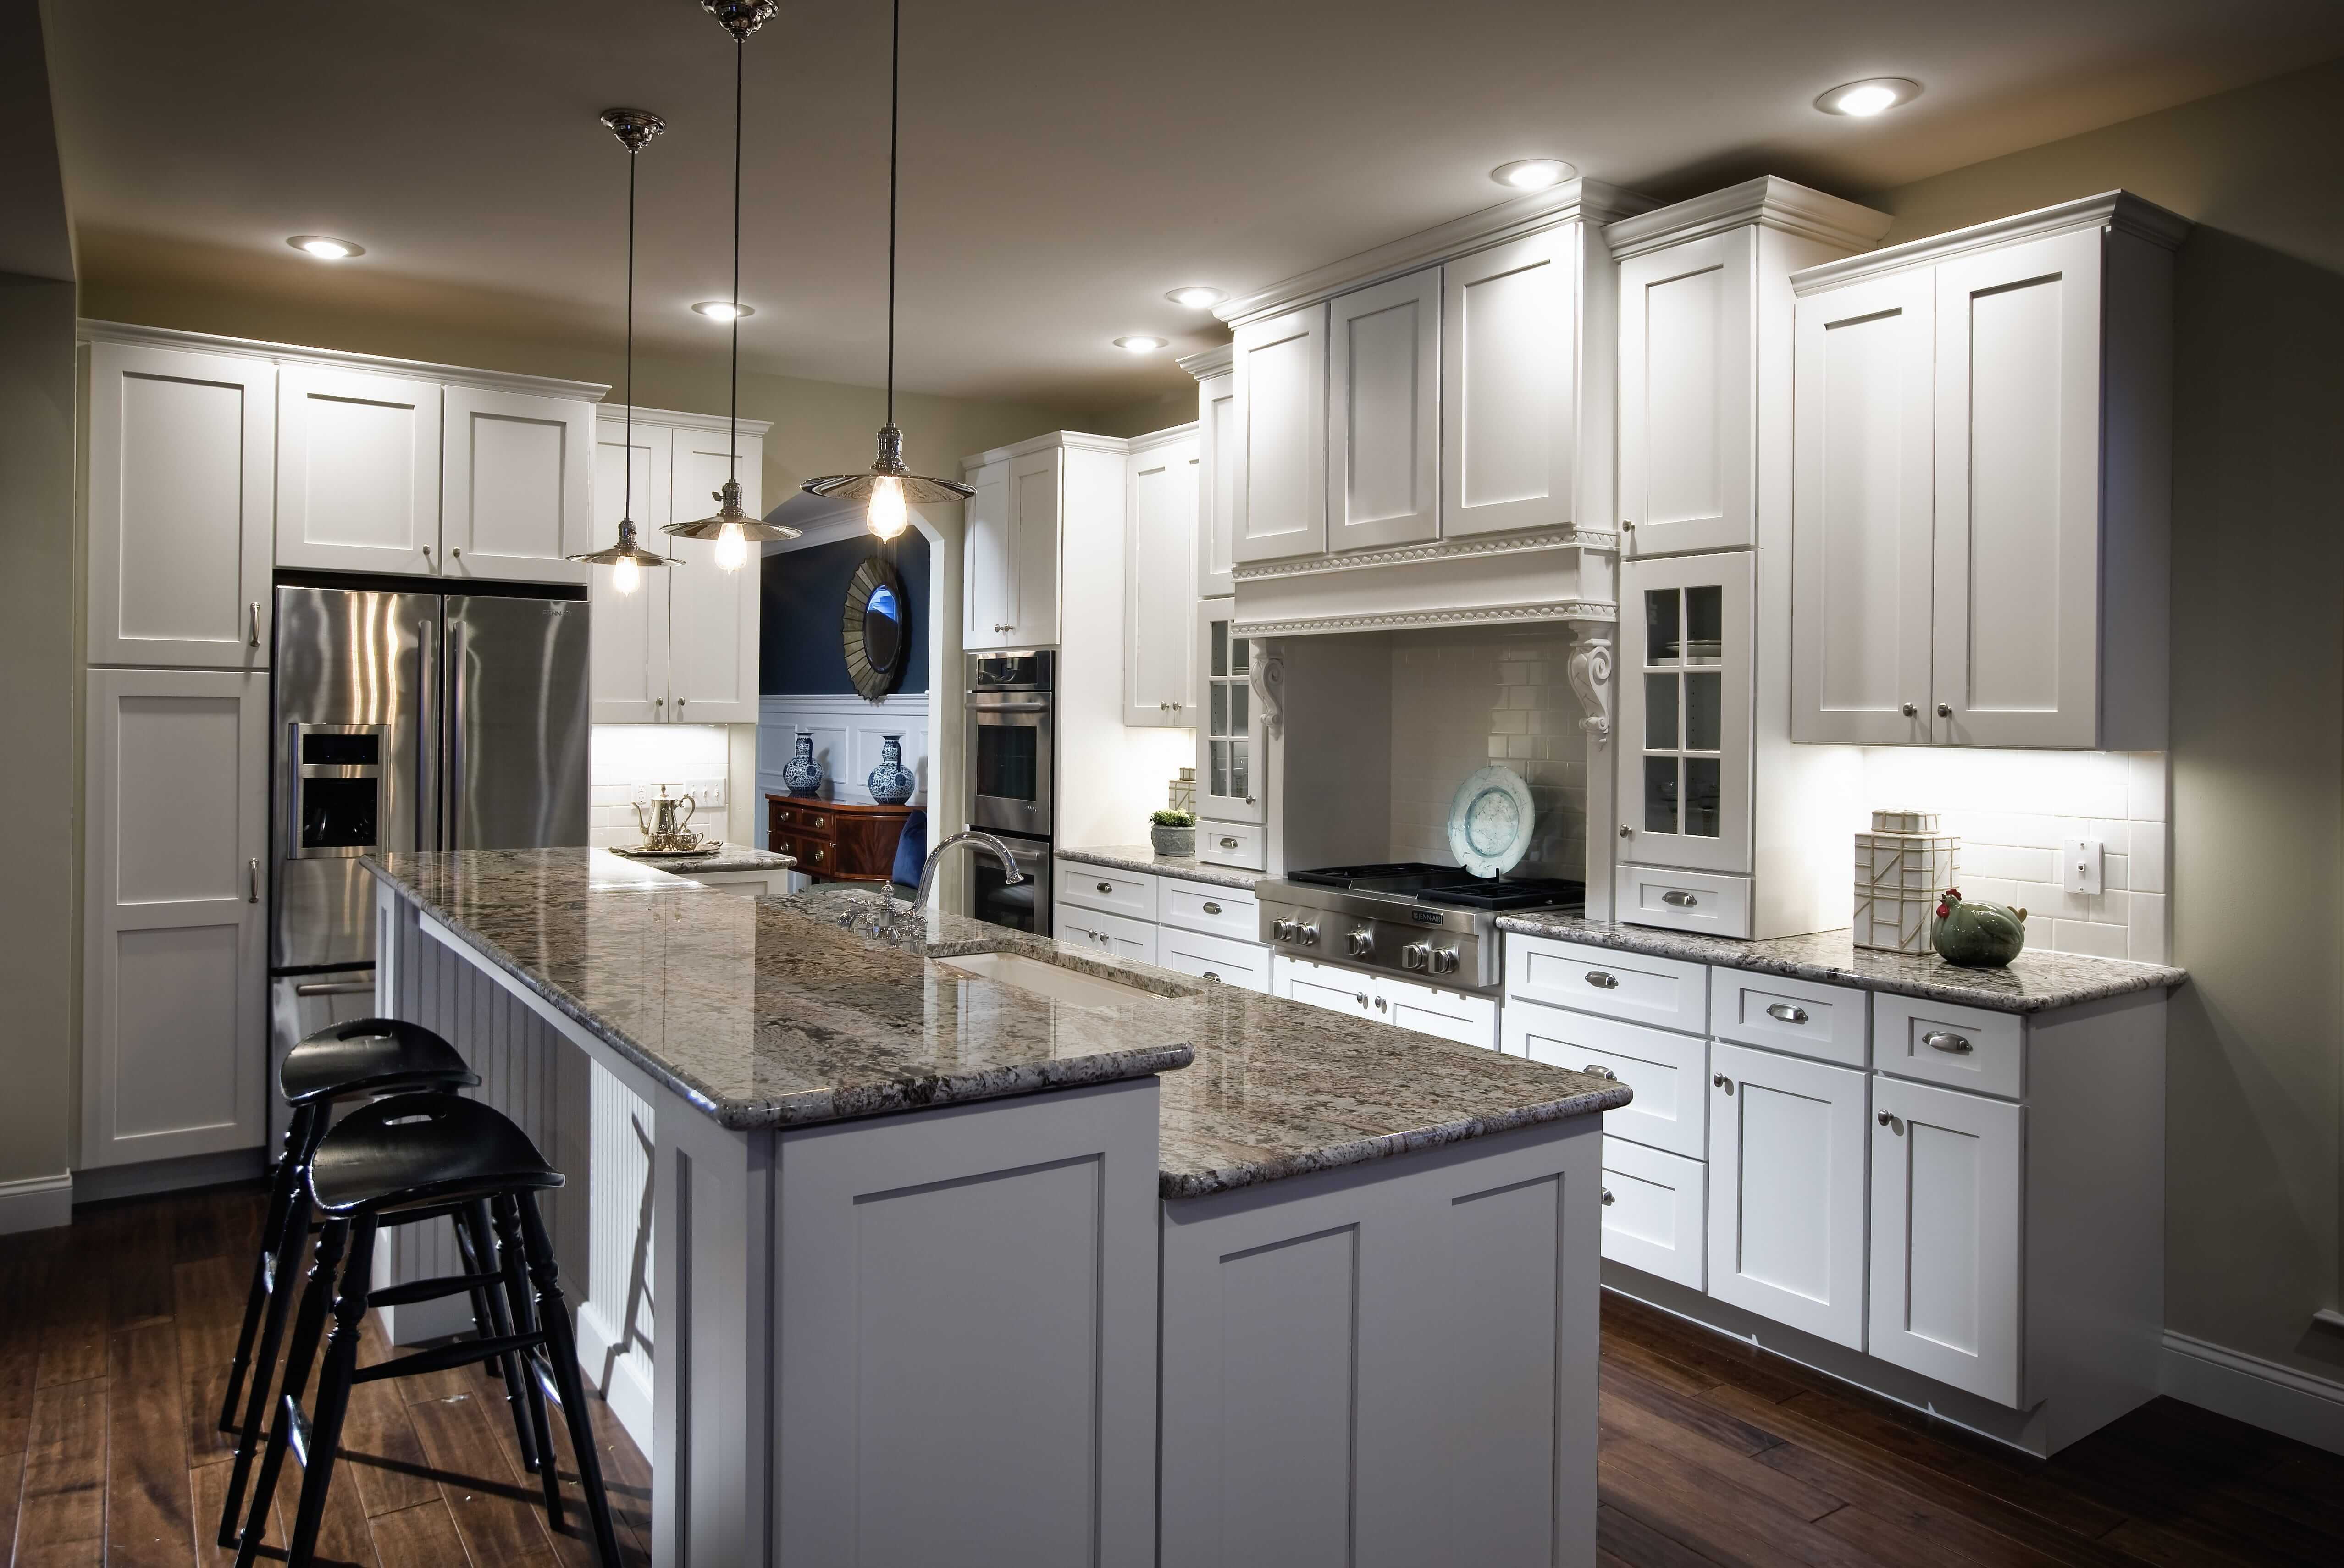 68 Deluxe Custom Kitchen Island Ideas Jaw Dropping Designs Kitchen Island With Sink One Wall Kitchen Kitchen Layouts With Island